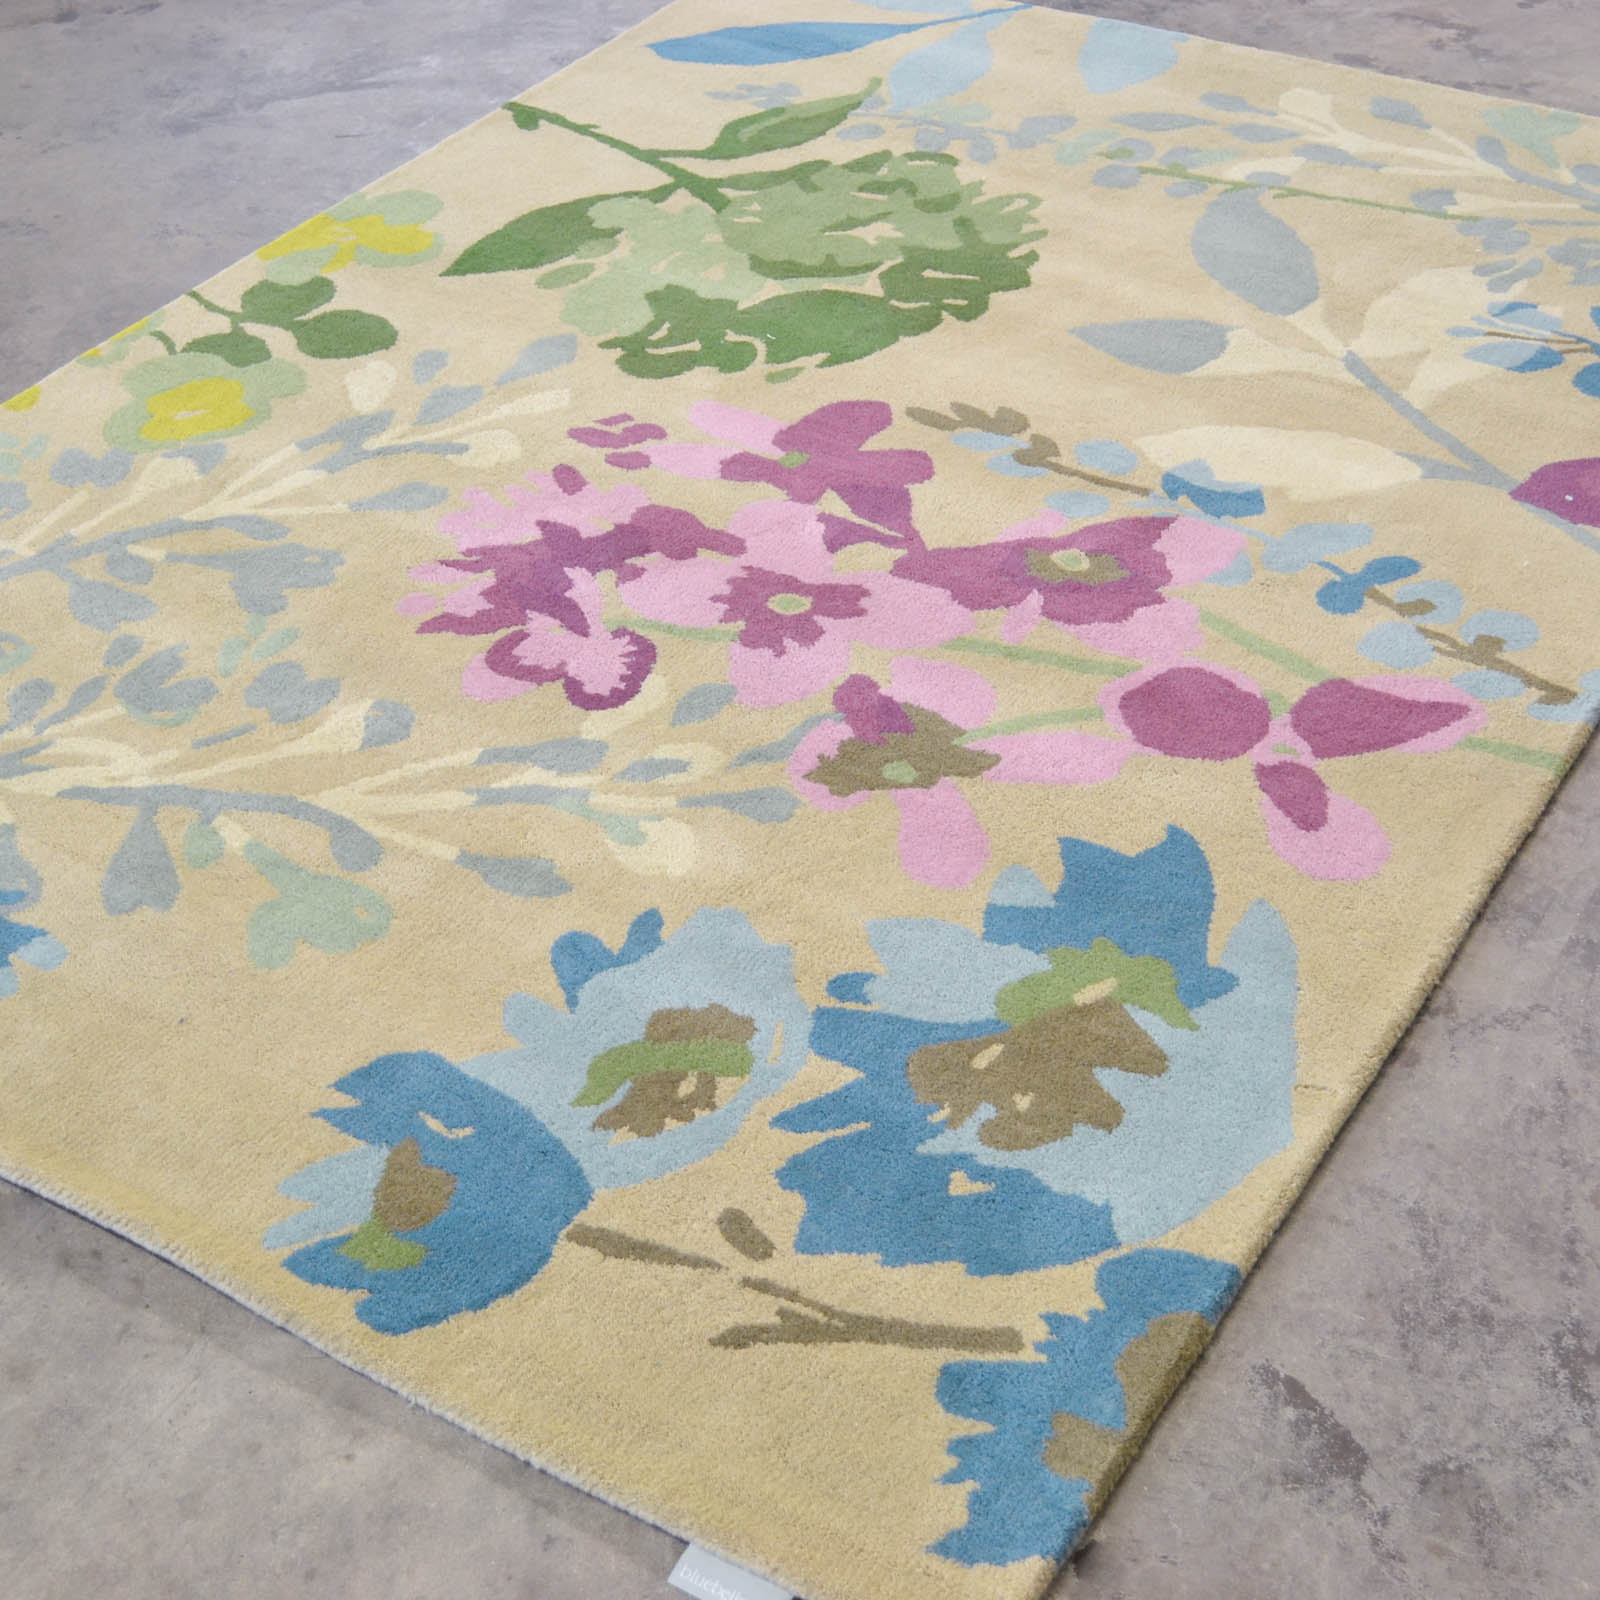 Braybrooke Rugs 19304 by Bluebellgray